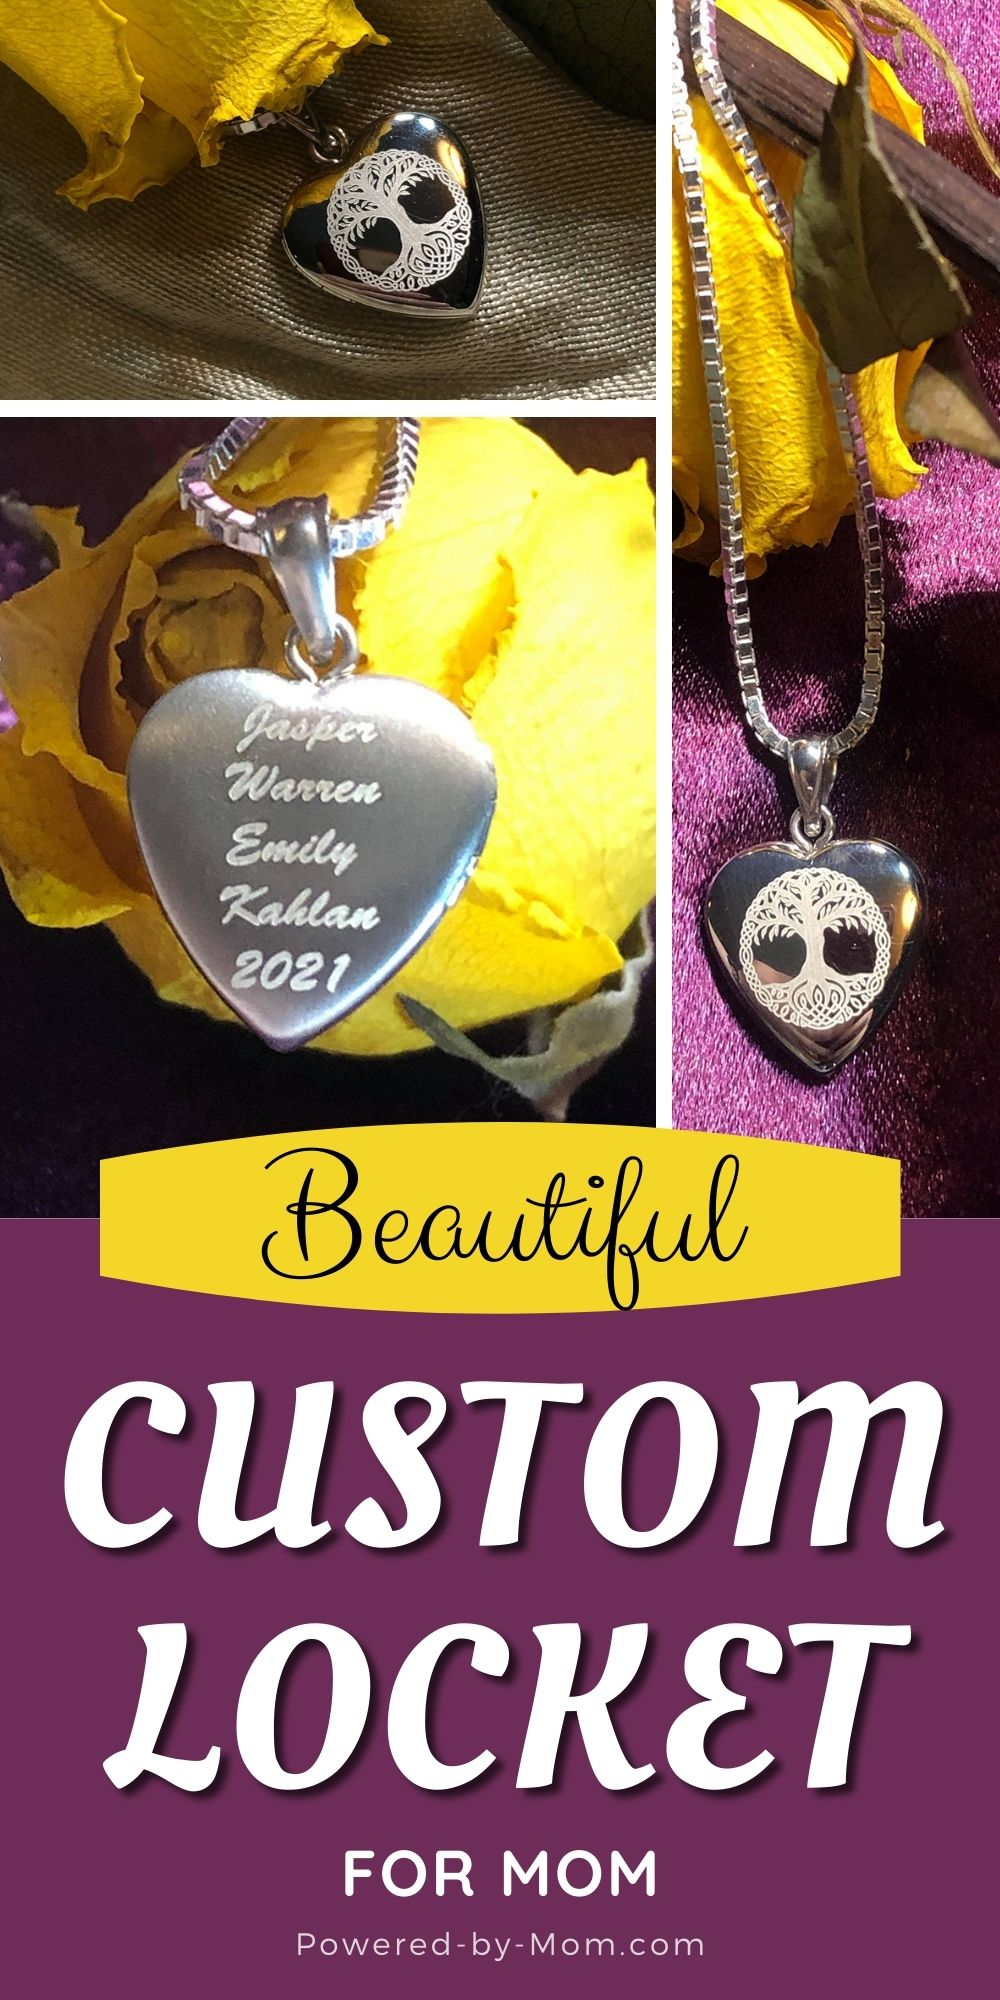 This beautiful Pictures on Gold build your own sterling silver locket necklace for mom is completely one of a kind.